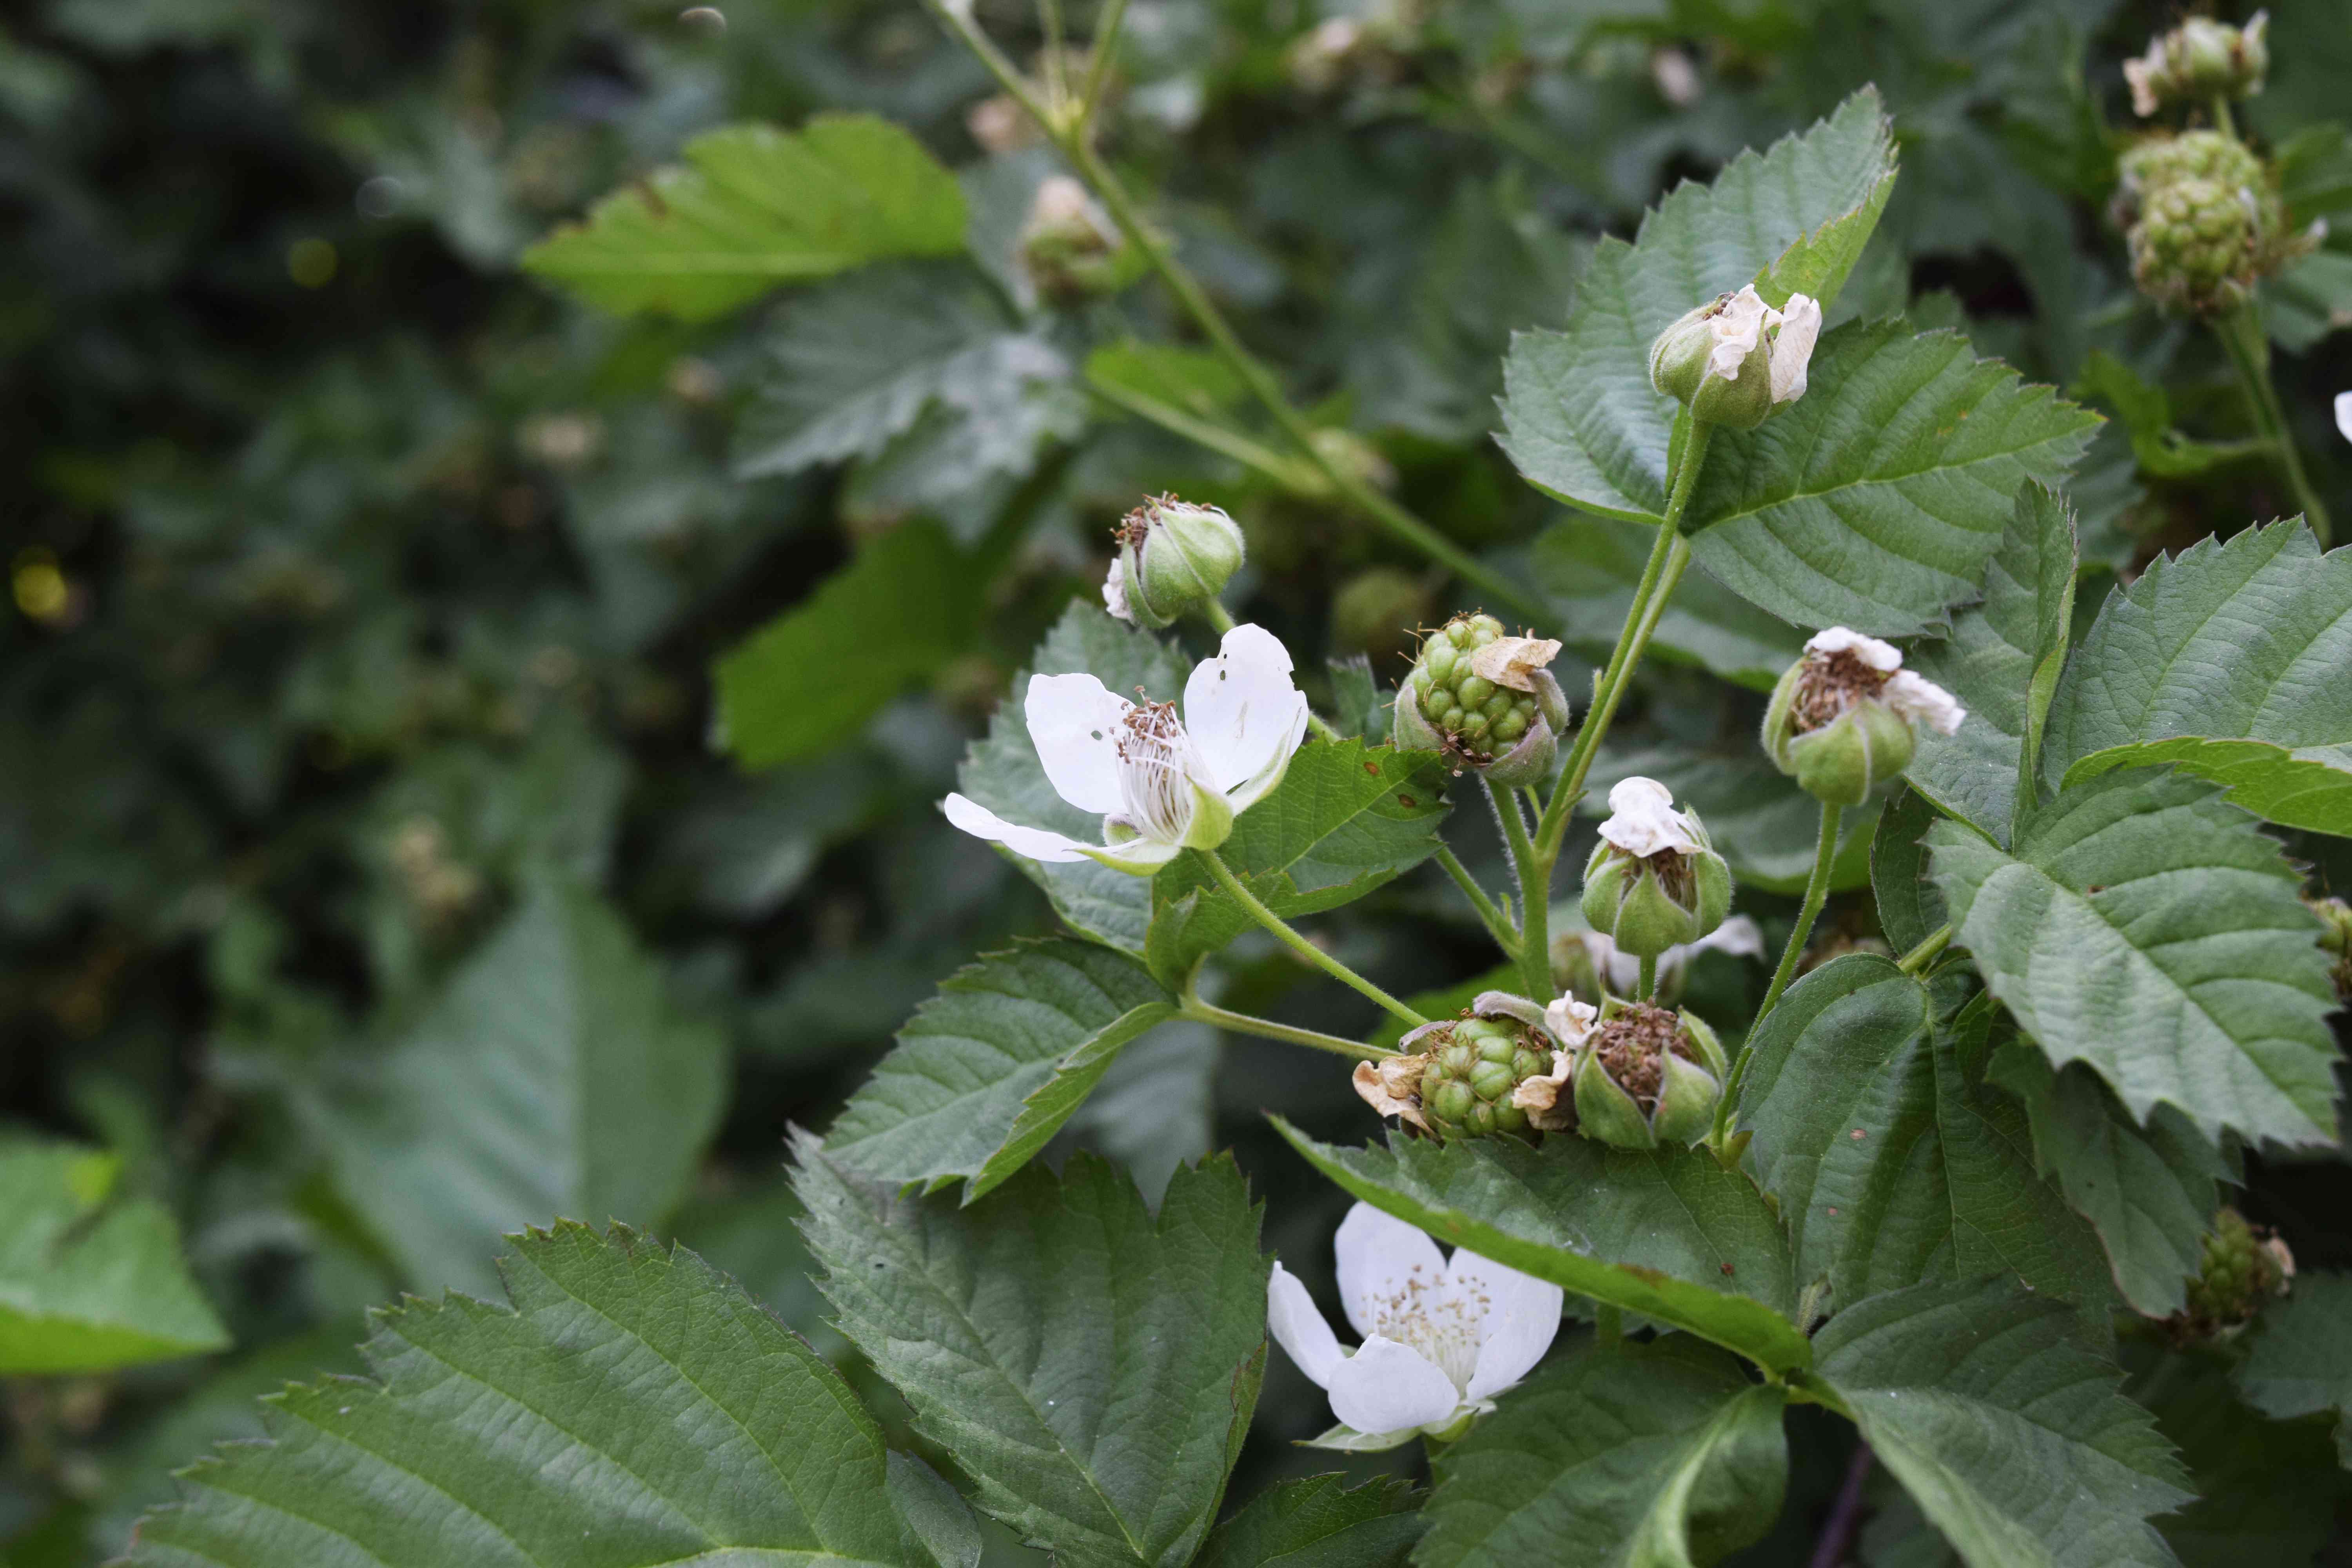 Blackberry plant with small white flowers, flower buds and light green fruit buds